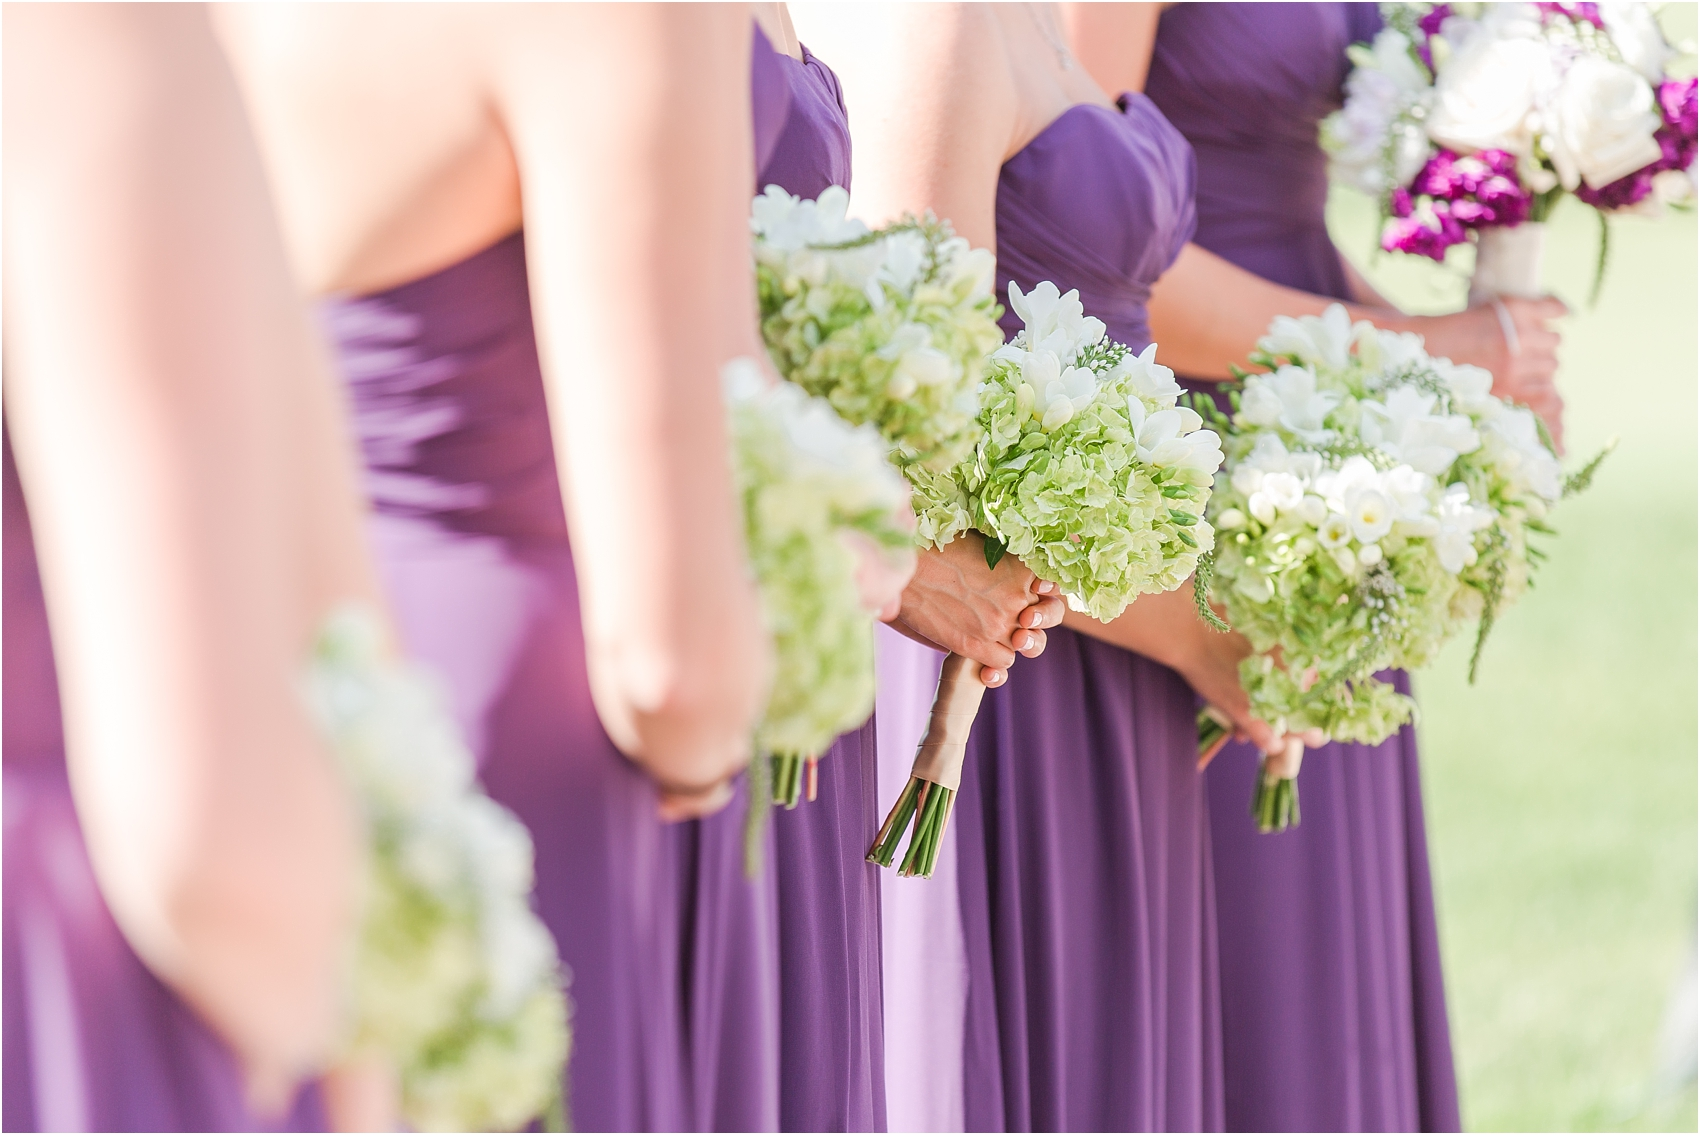 classic-wedding-photos-at-great-oaks-country-club-in-rochester-hills-mi-by-courtney-carolyn-photography_0070.jpg